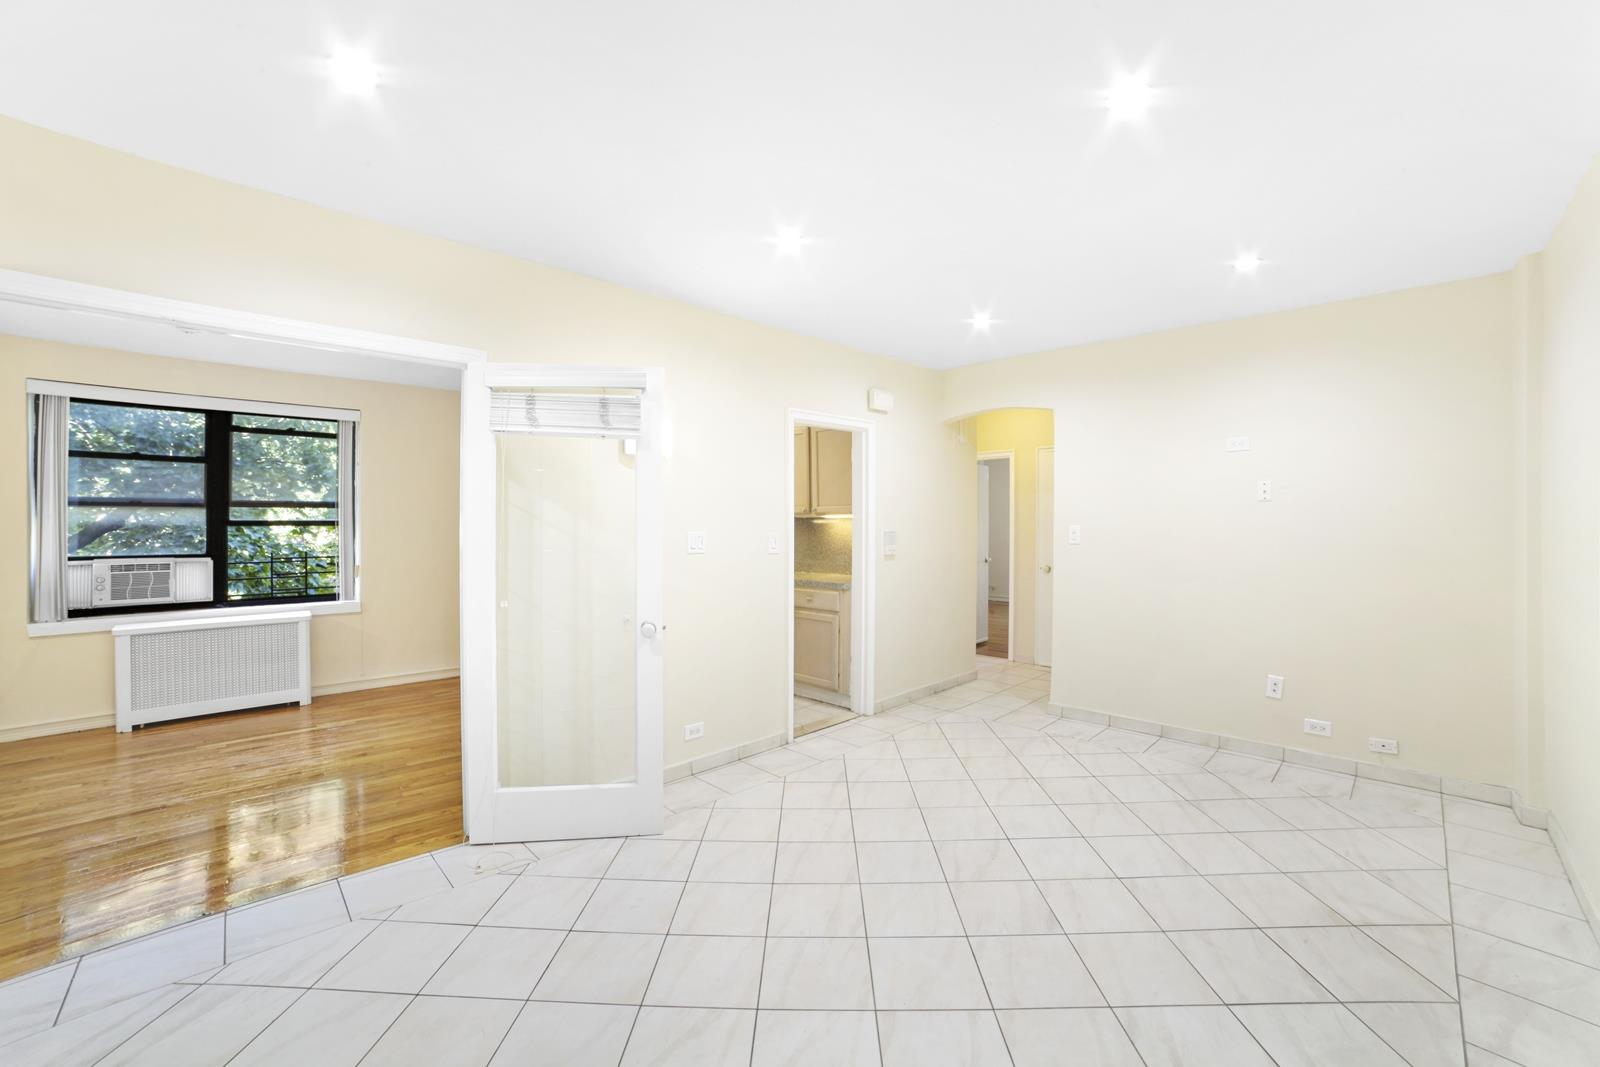 Apartment for sale at 22-20 78th Street, Apt A-2